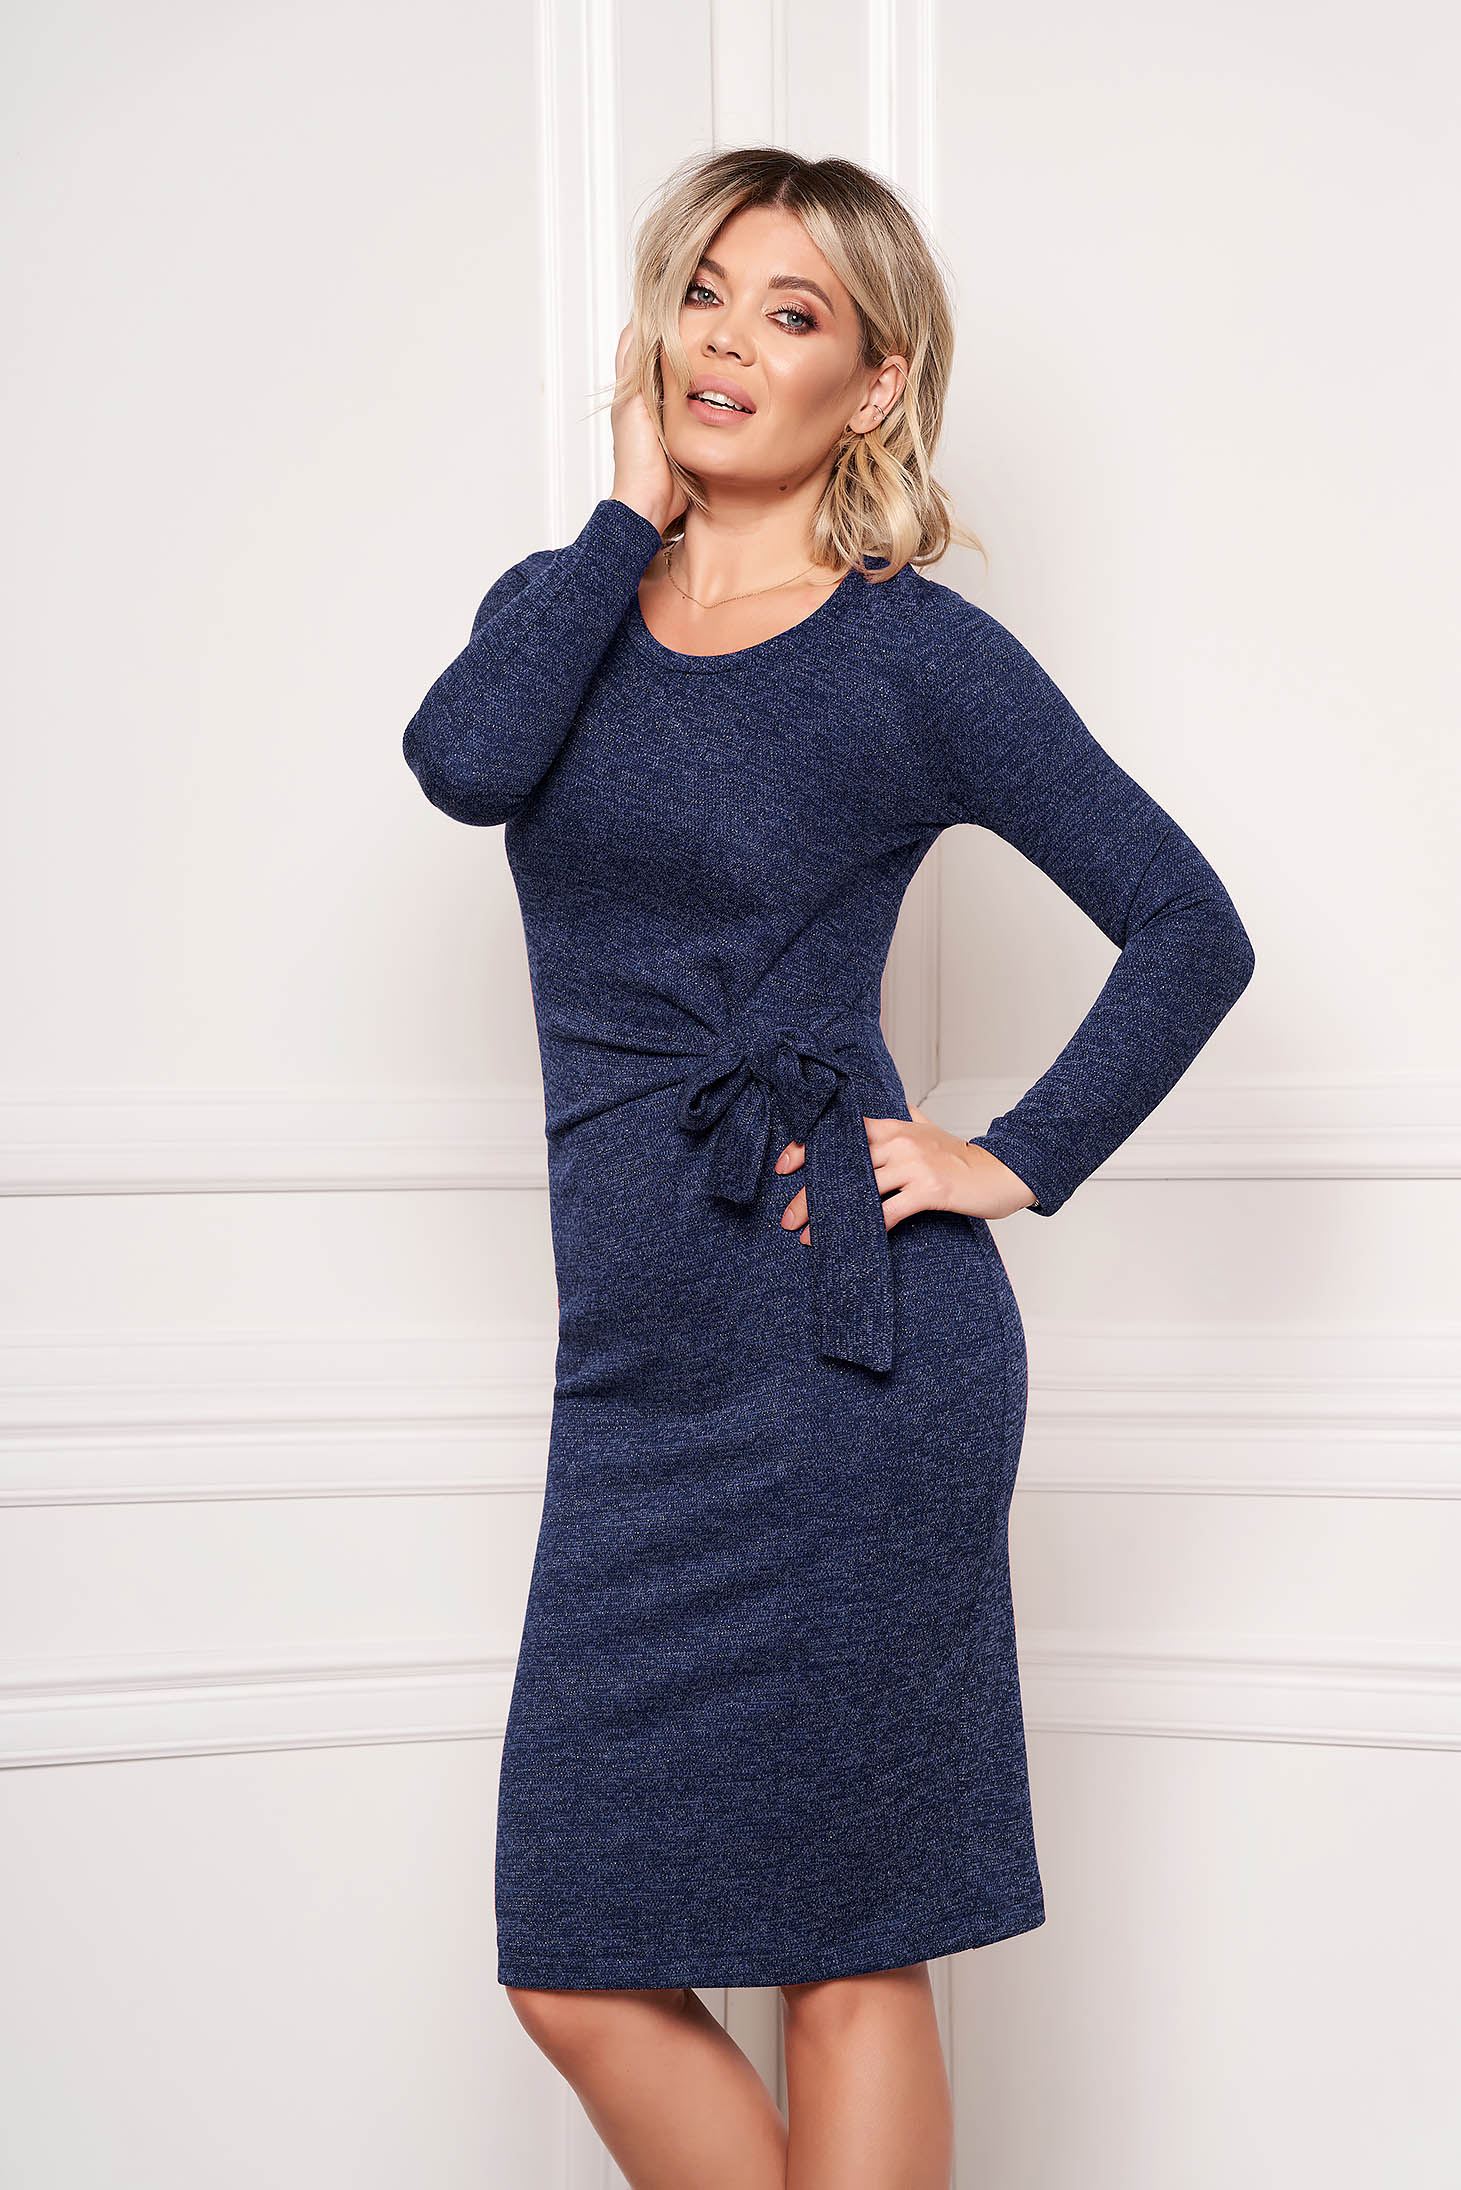 StarShinerS darkblue dress elegant midi pencil knitted fabric accessorized with tied waistband without clothing